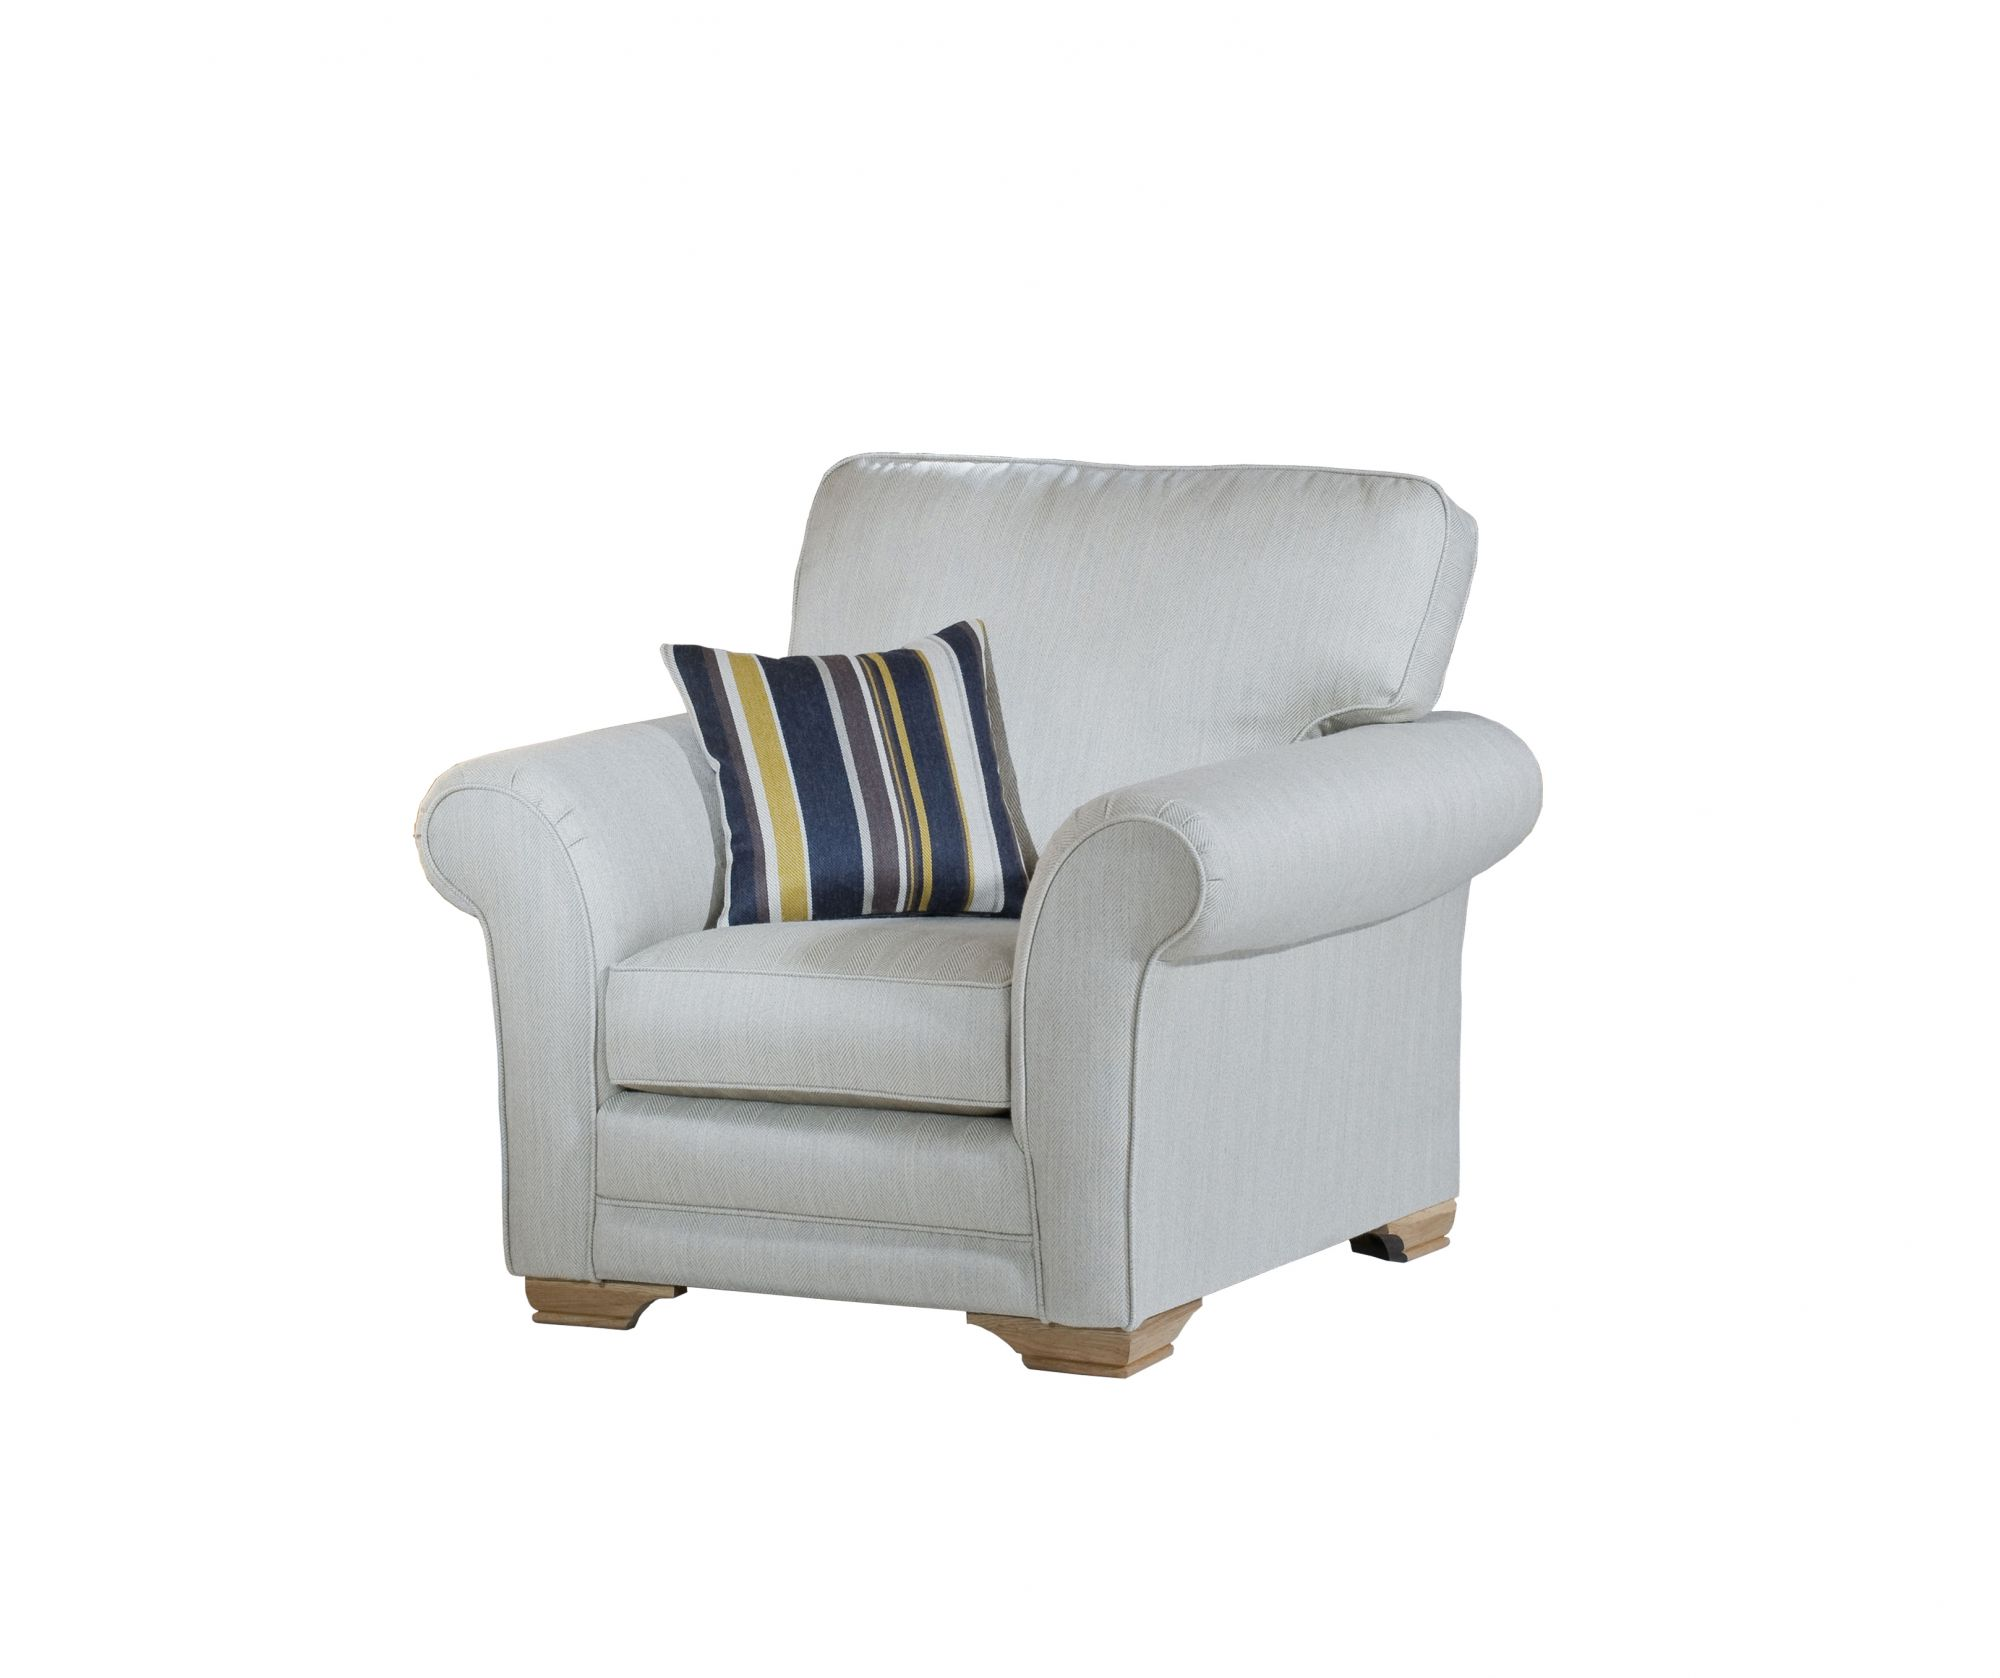 vermont armchair fabric e all sofa collections meubles. Black Bedroom Furniture Sets. Home Design Ideas